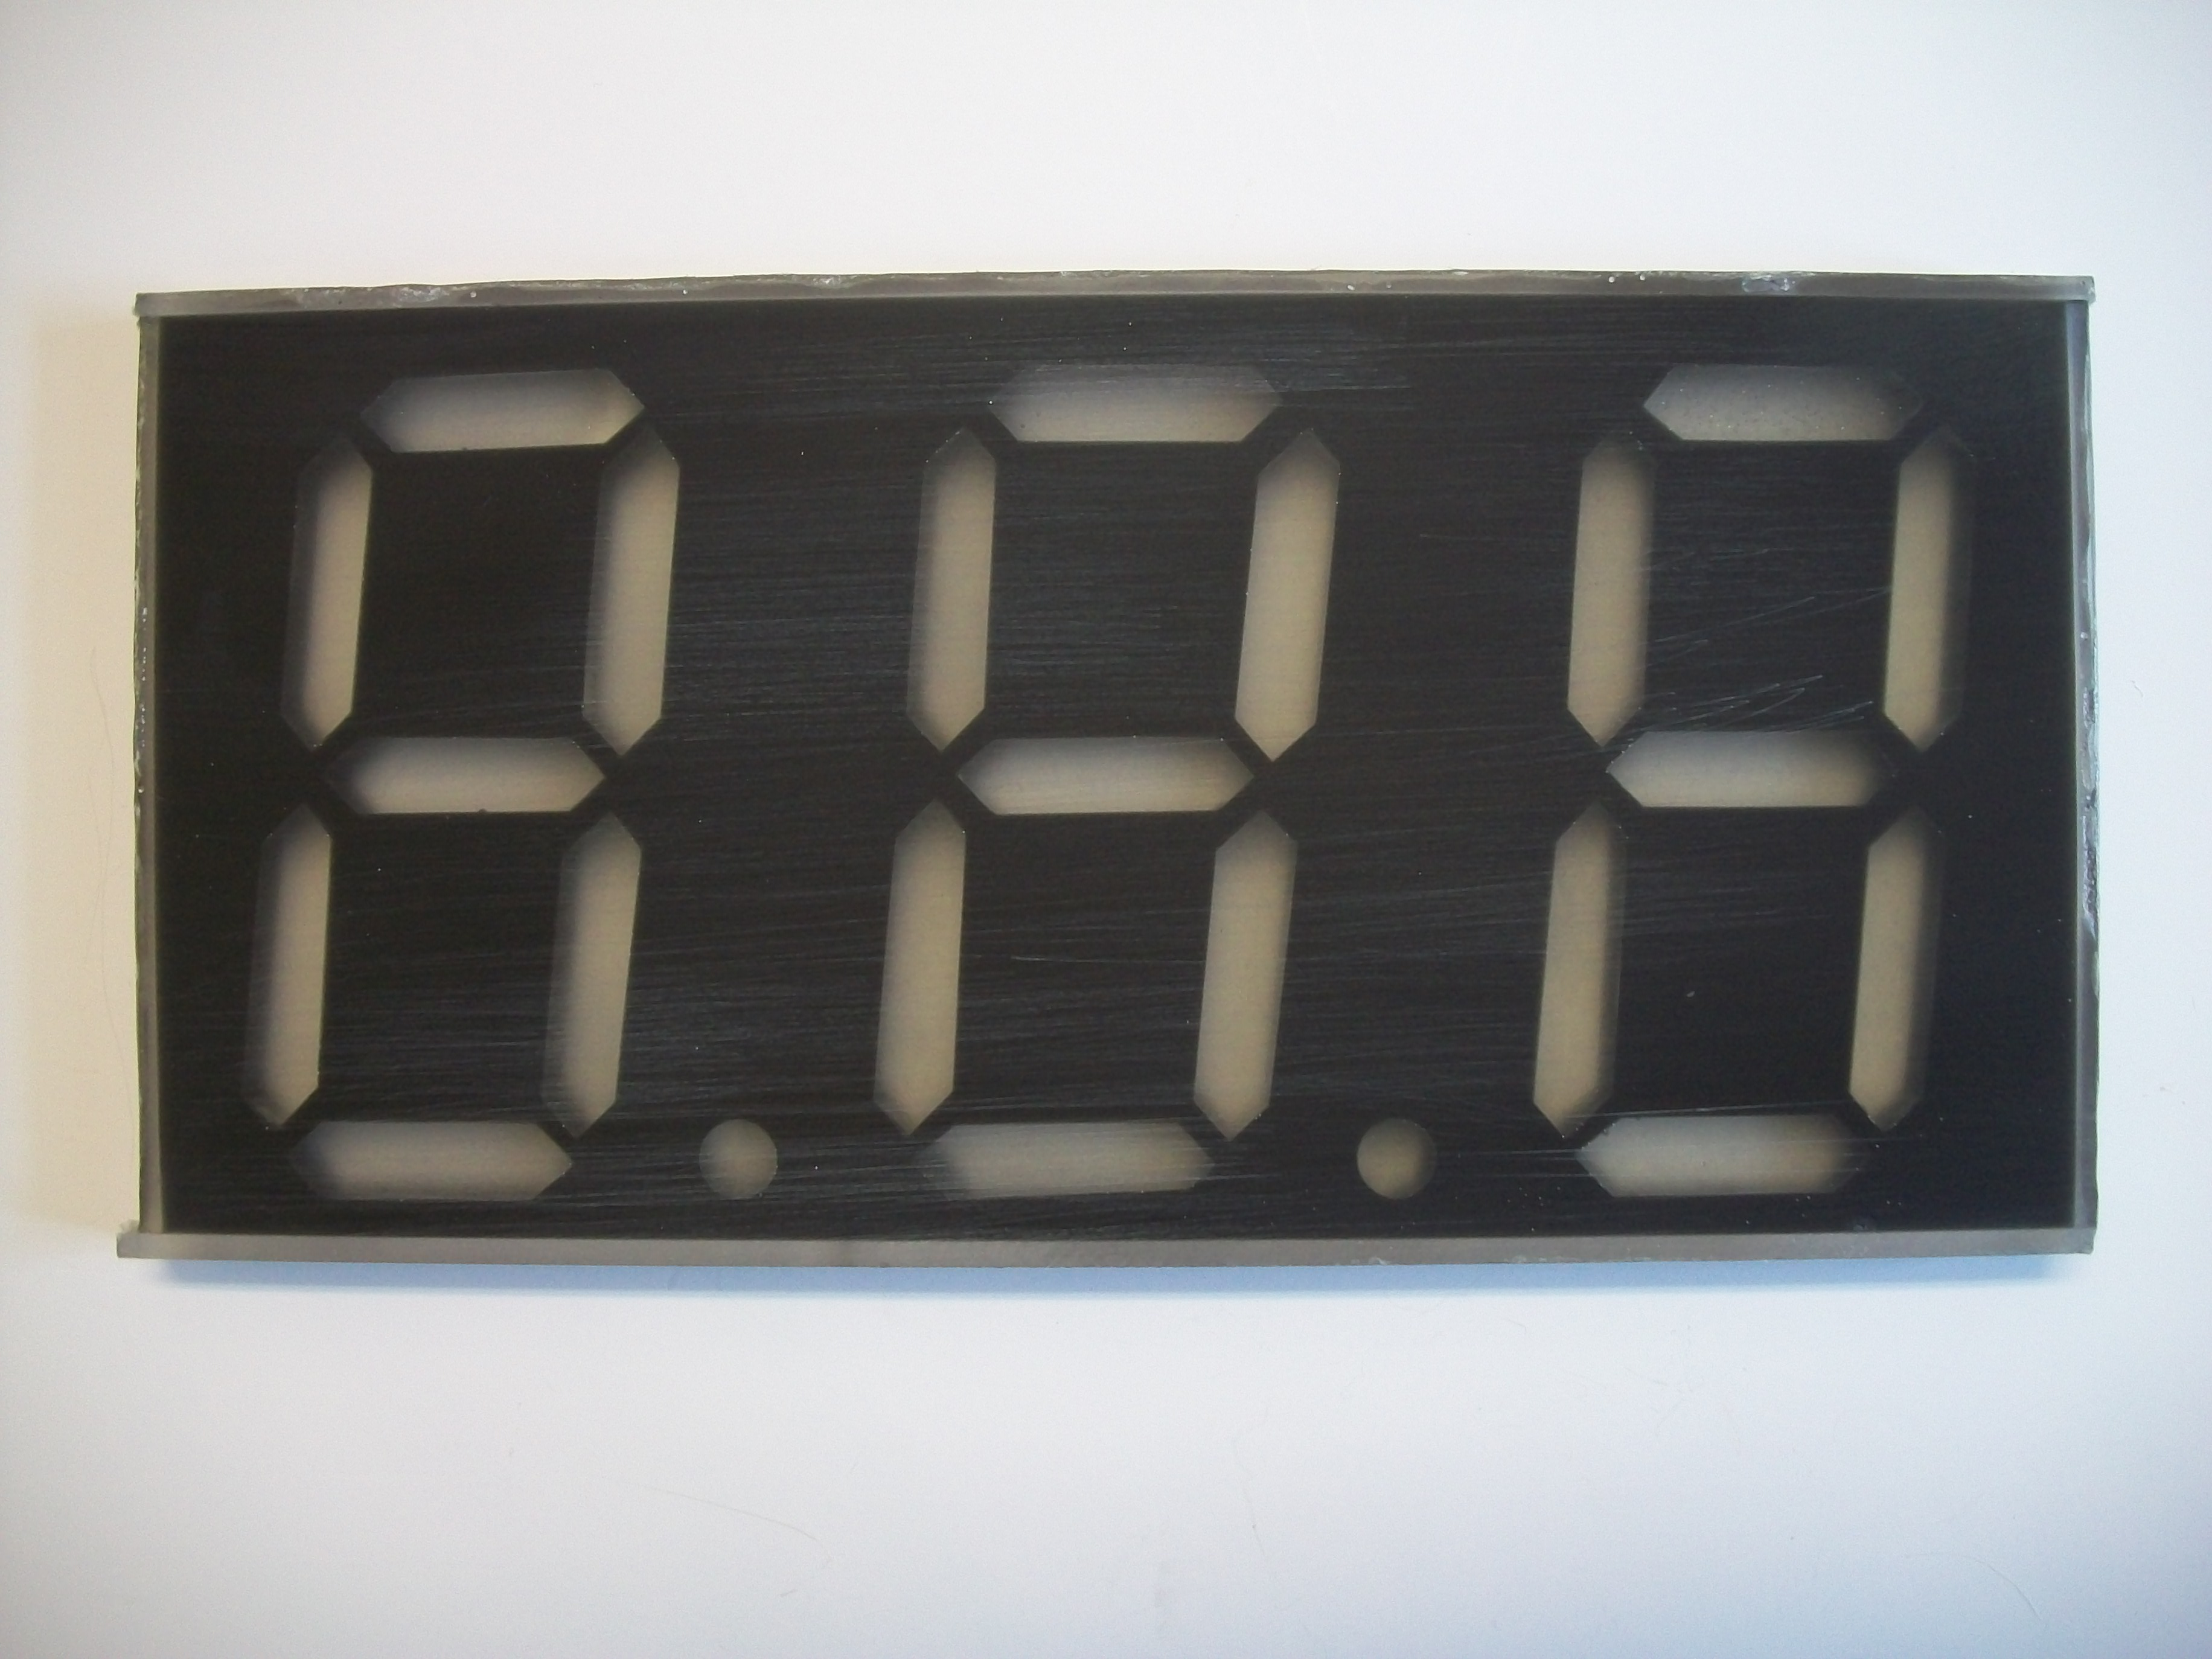 Picture of Digit Plate Finish Up